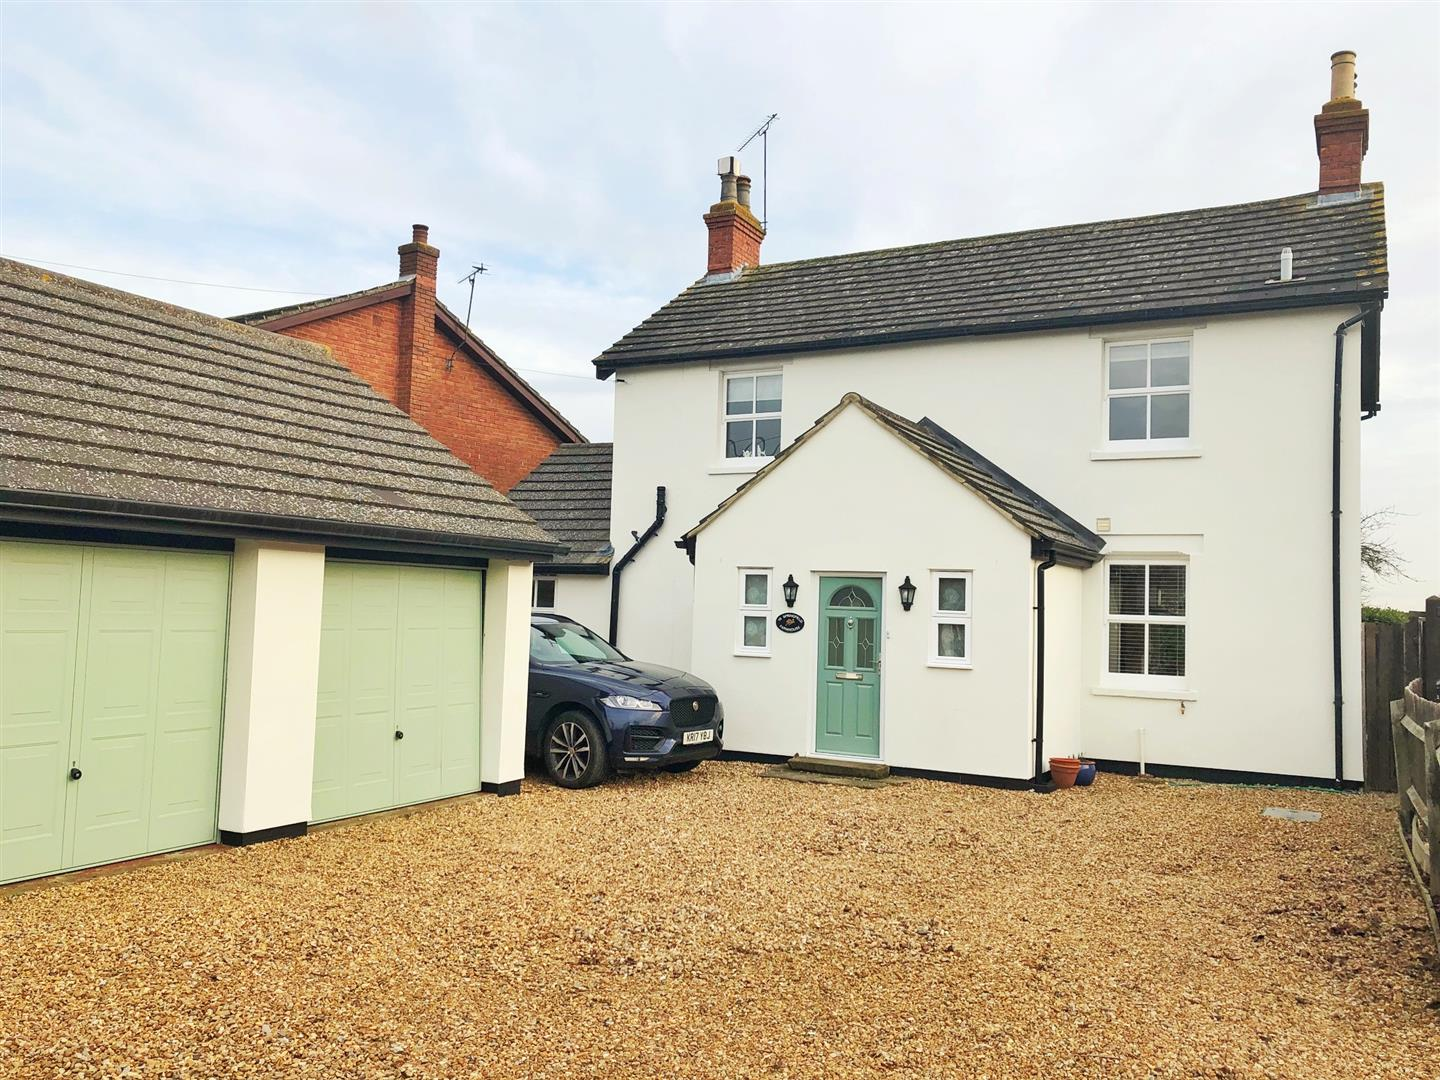 **VILLAGE LOCATION**<br/><br/>This lovely Edwardian Farmhouse which was built c1900 has been recently upgraded and refurbished to a high standard. It has been a loved family home and has many original features including double height ceilings.<br/><br/>Th